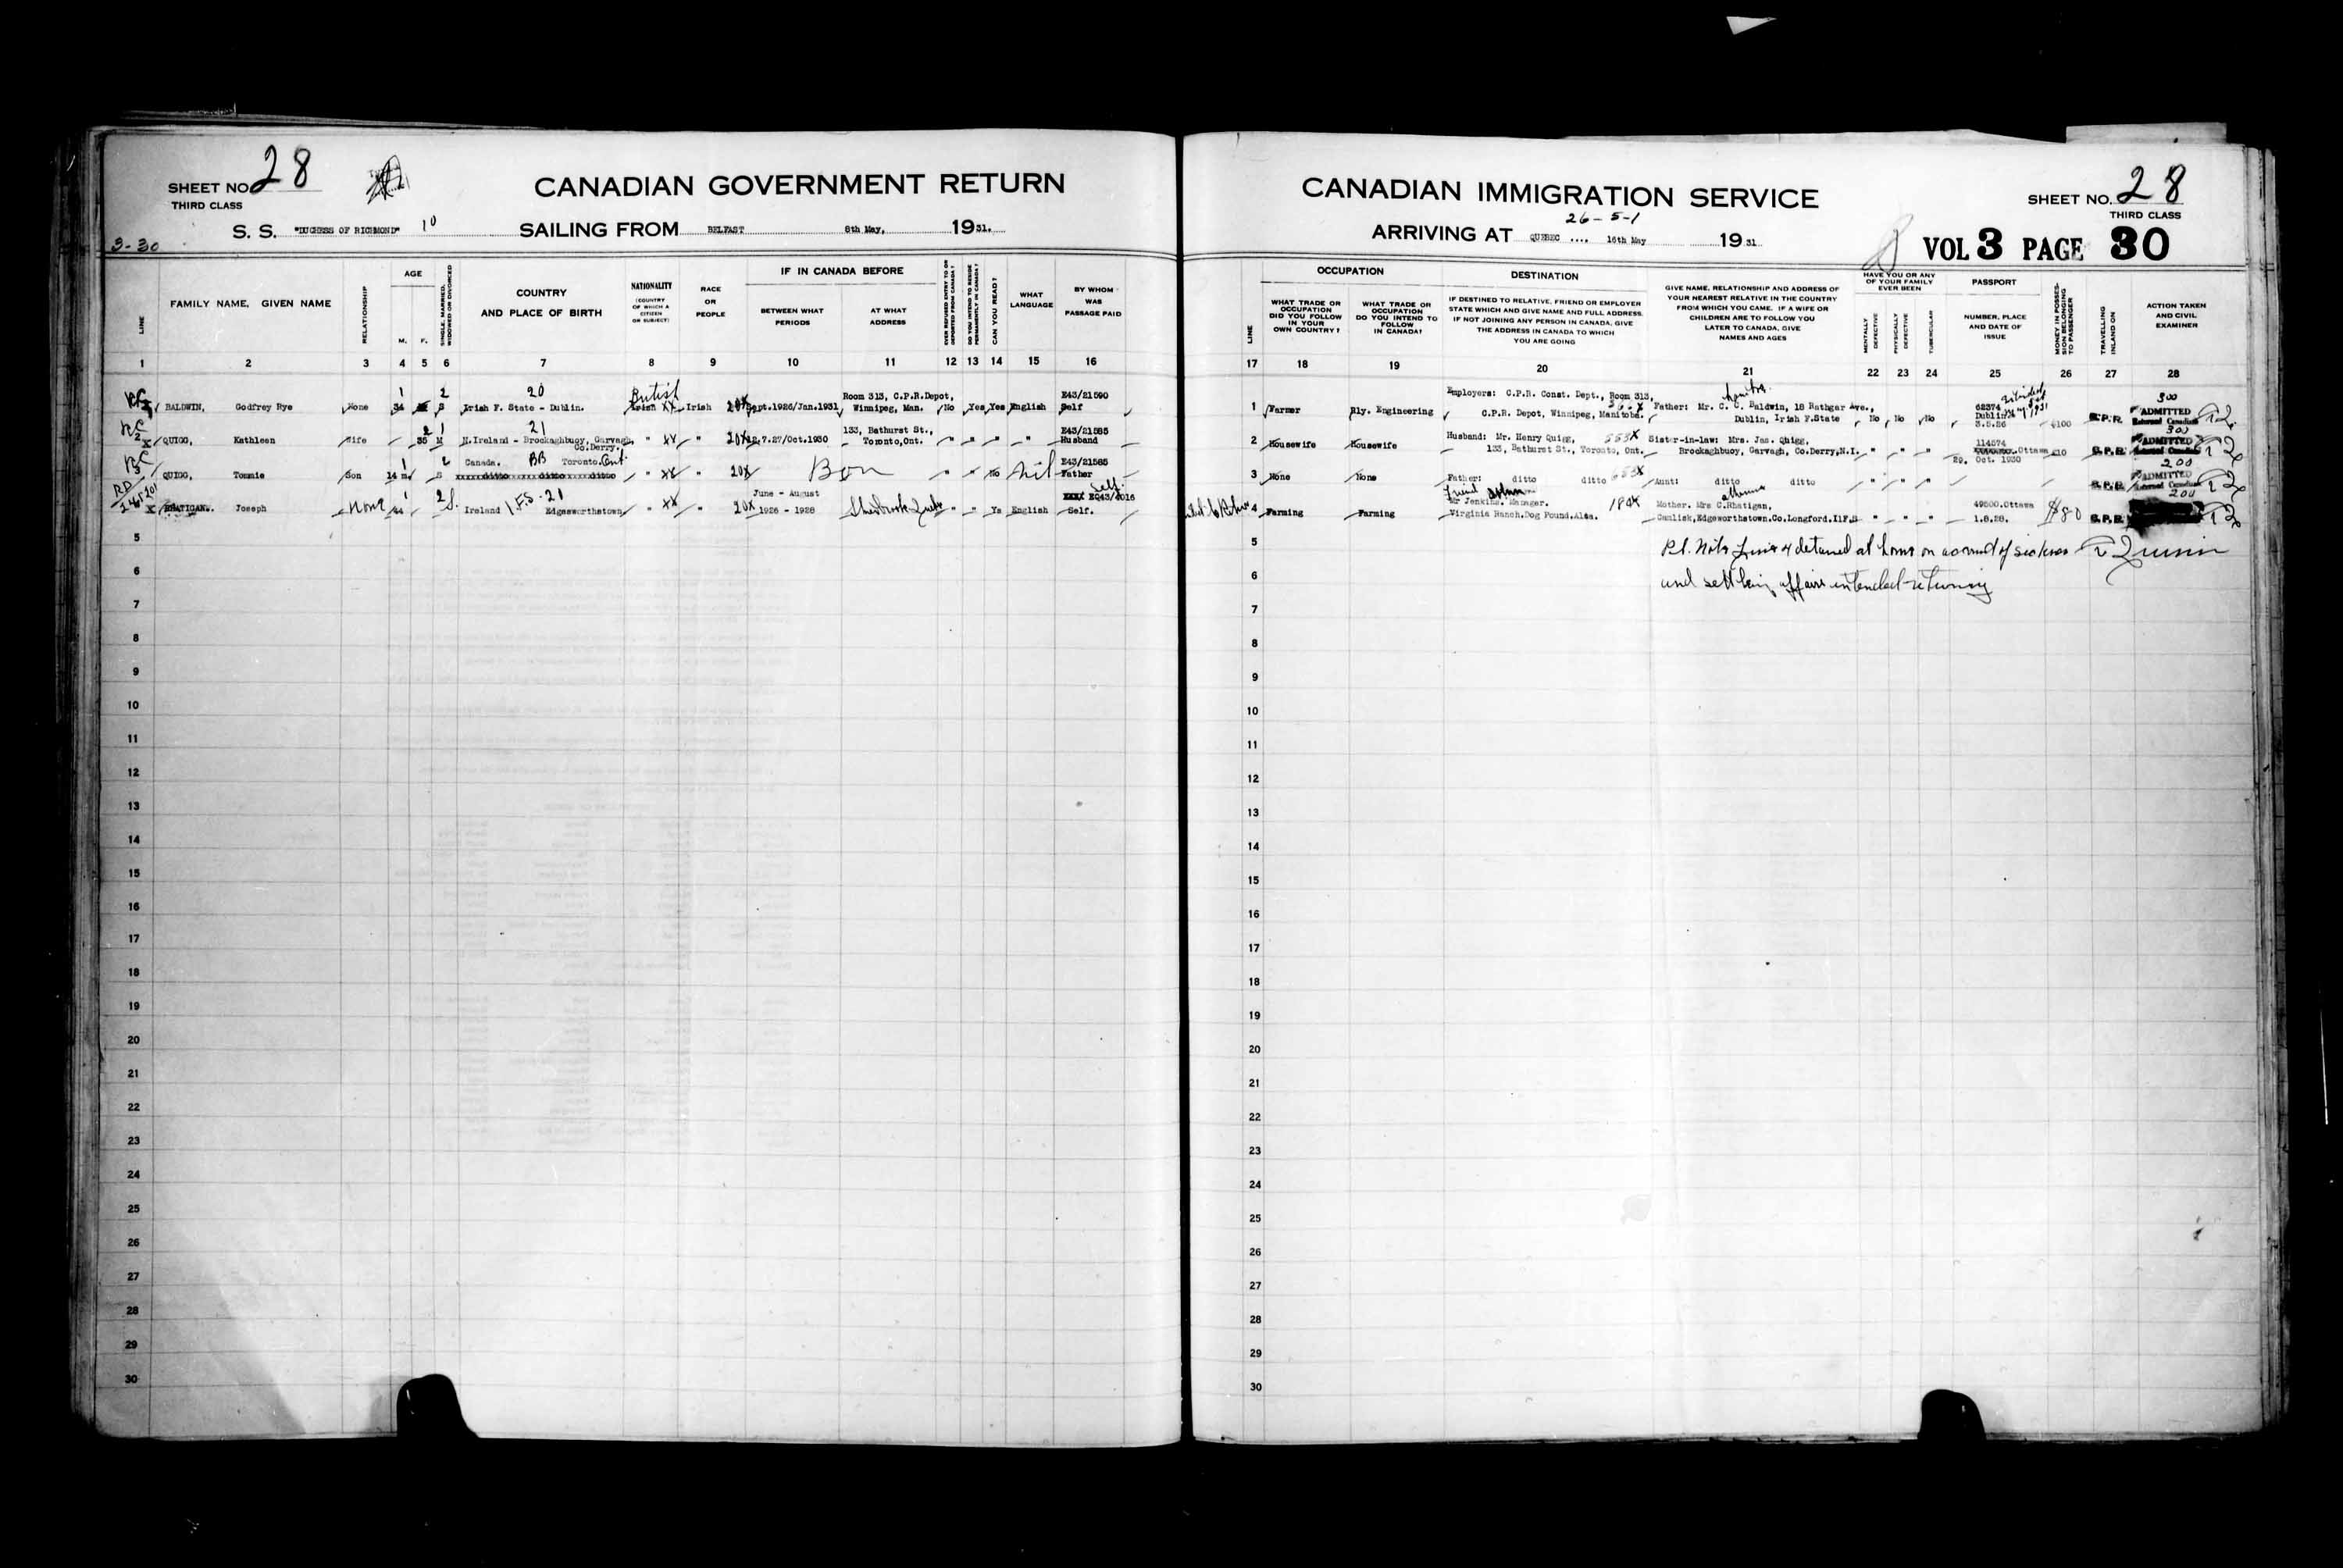 Title: Passenger Lists: Quebec City (1925-1935) - Mikan Number: 134839 - Microform: t-14771